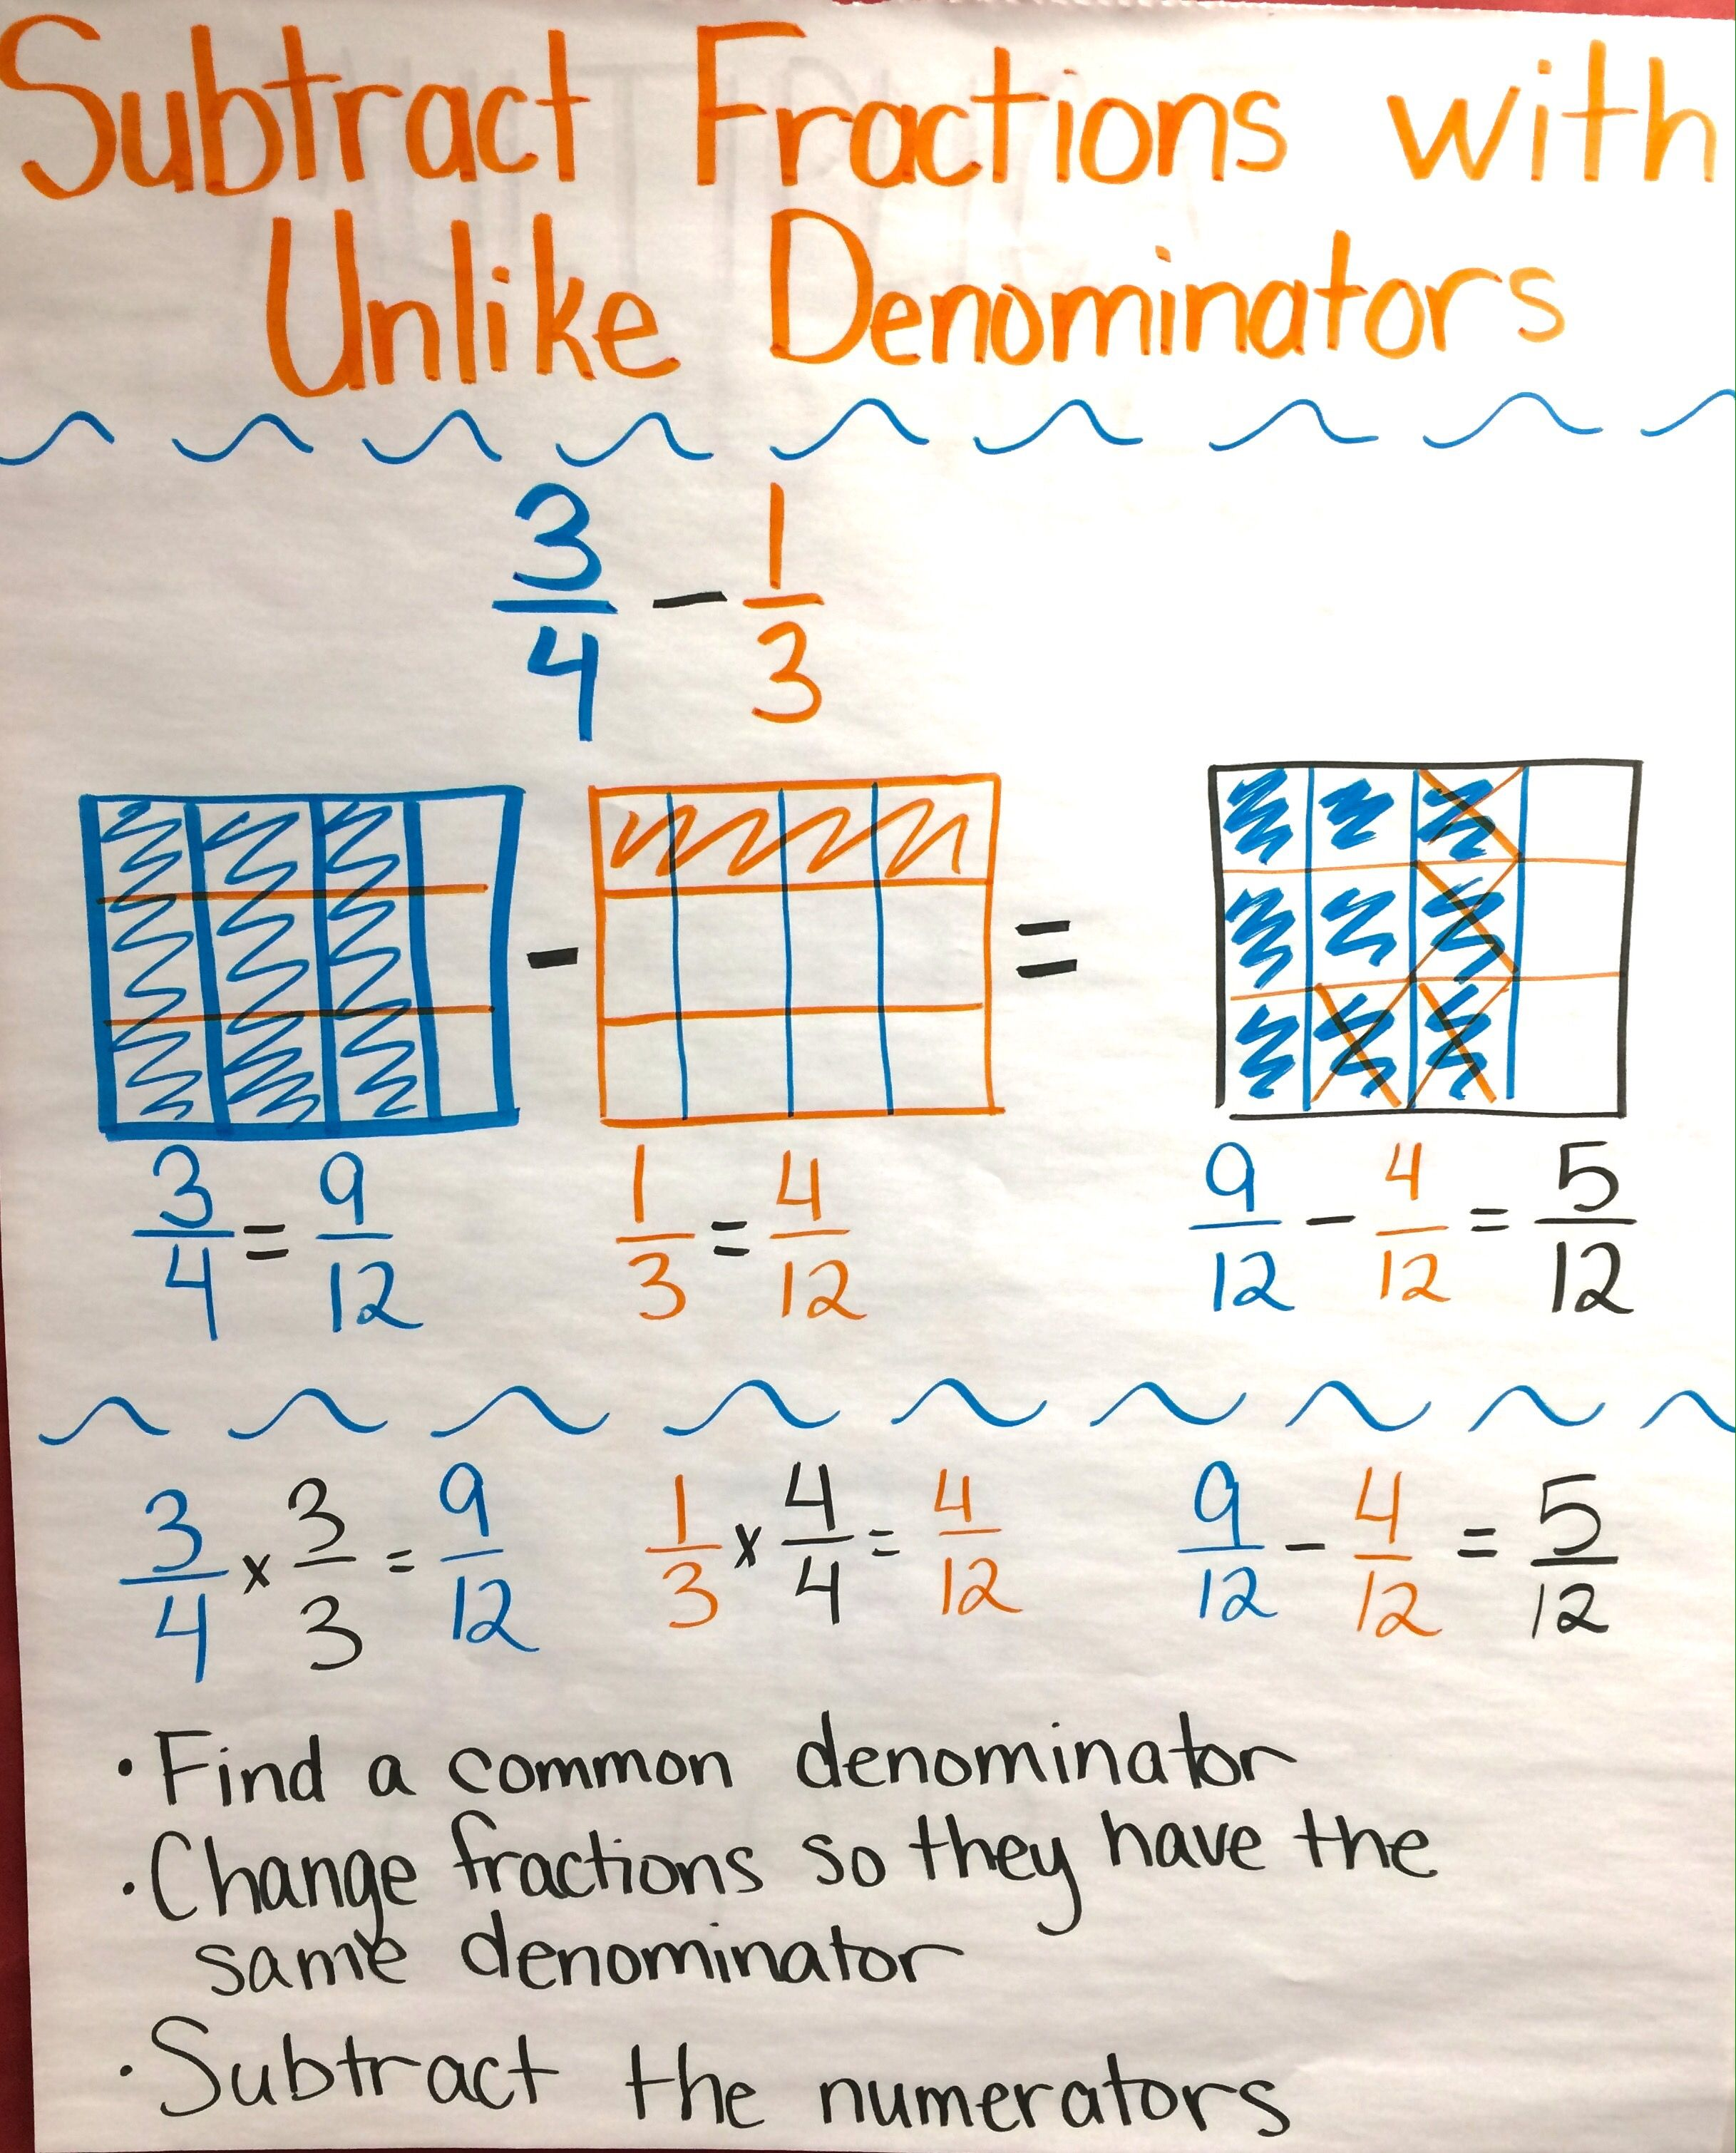 subtracting fractions anchor chart | anchor charts | pinterest